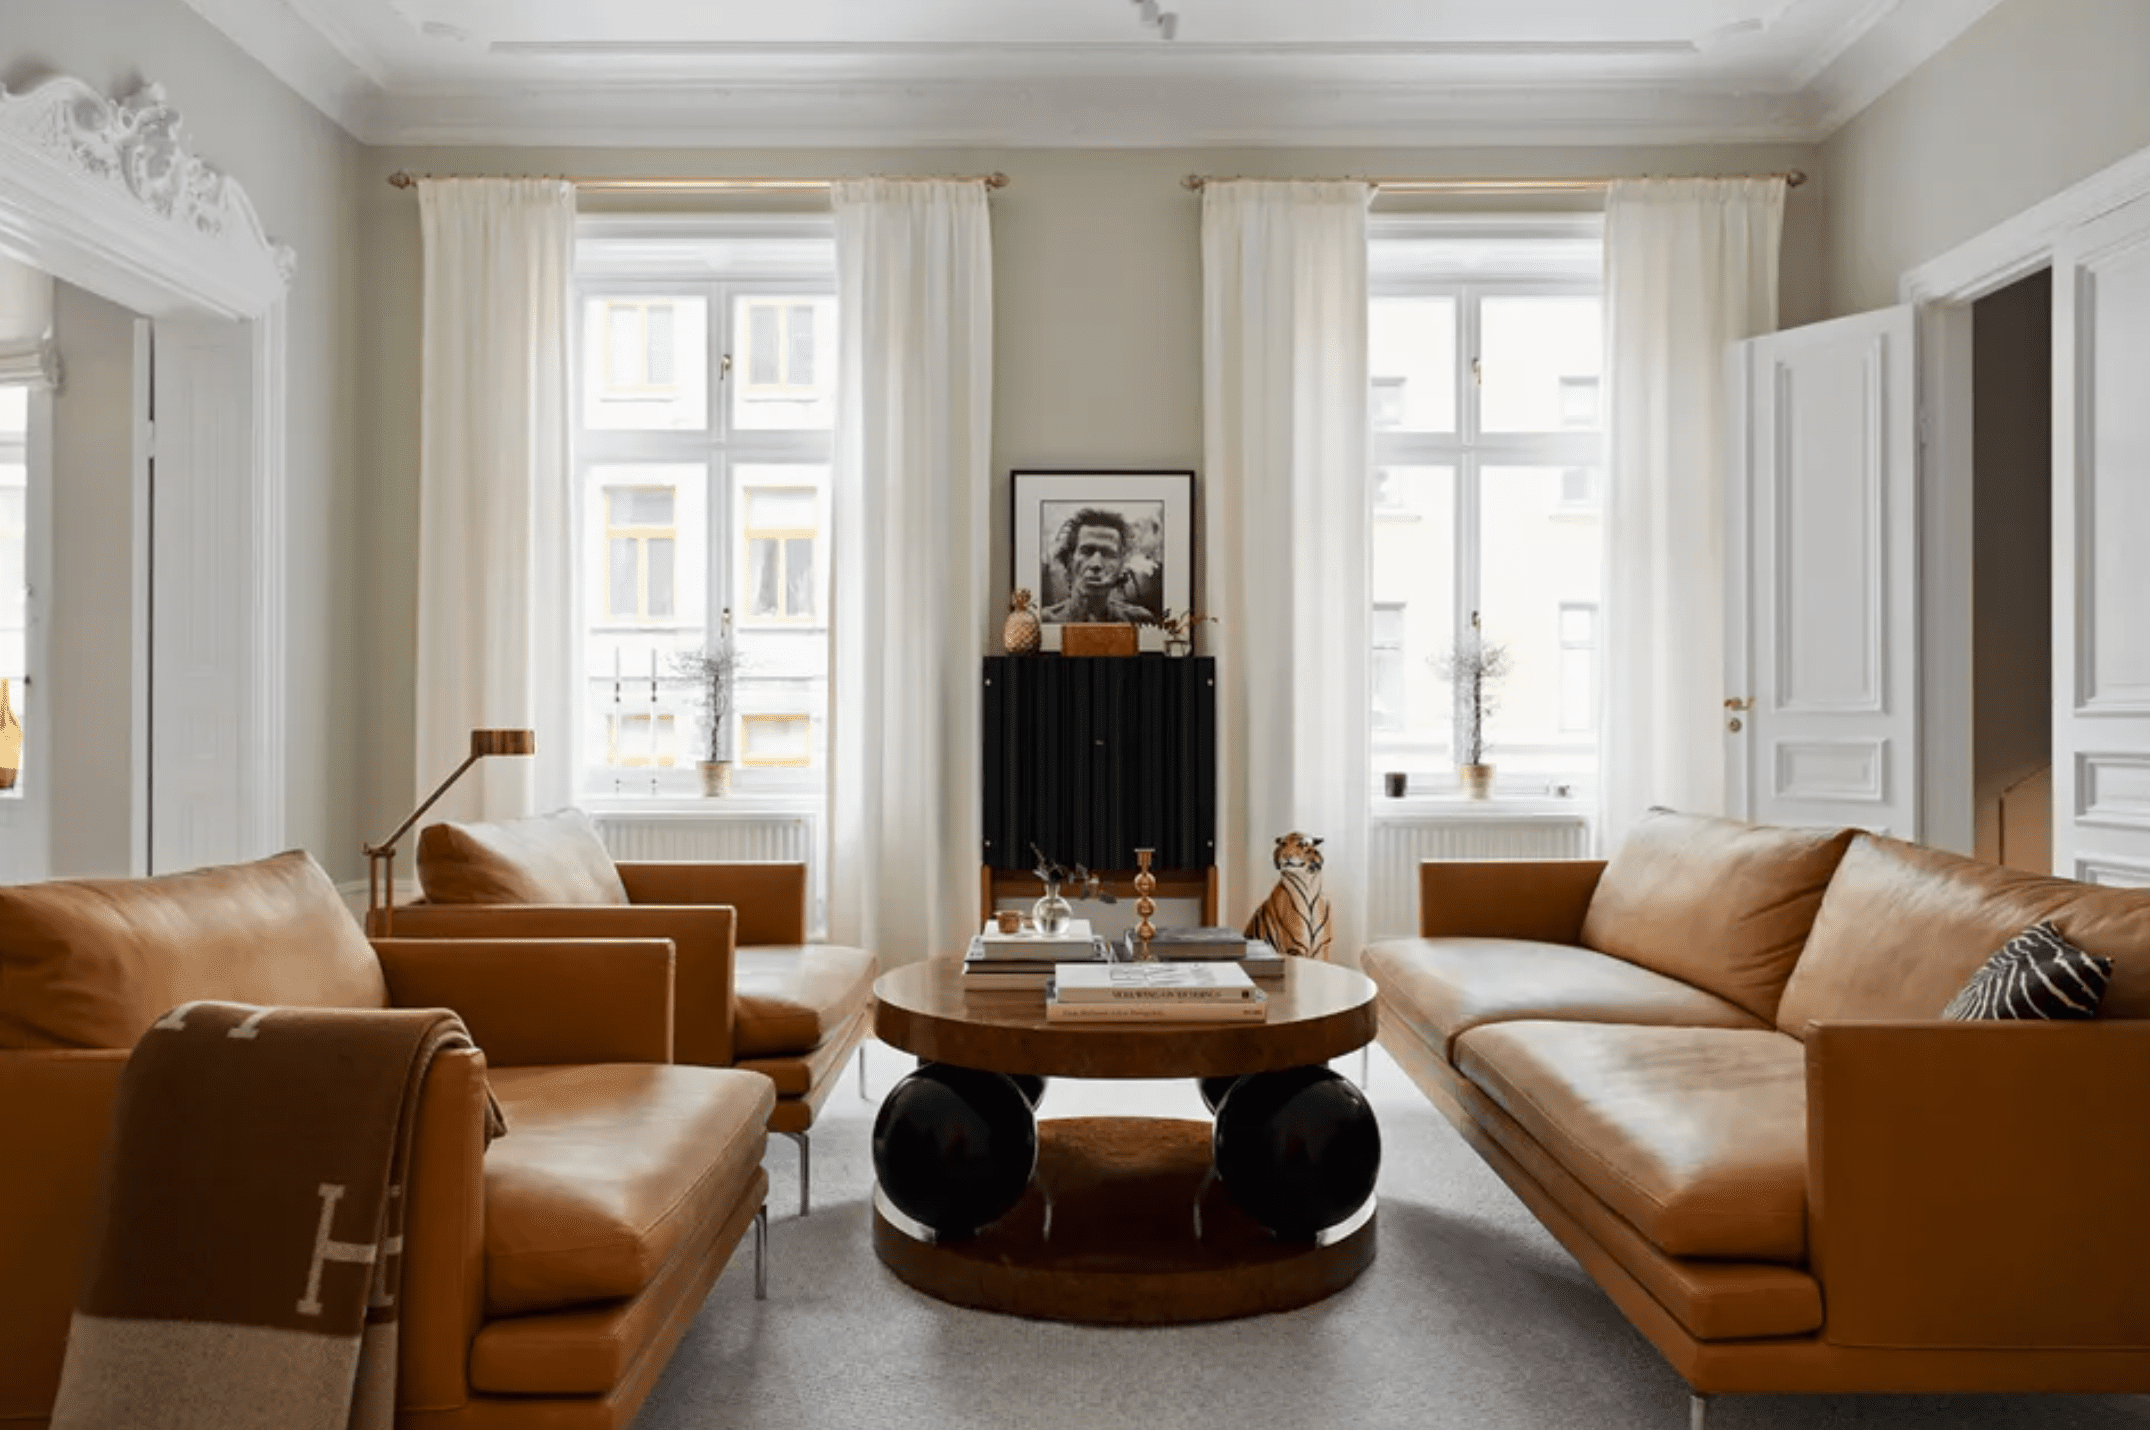 how to clean a leather couch - leather furniture in chic living area